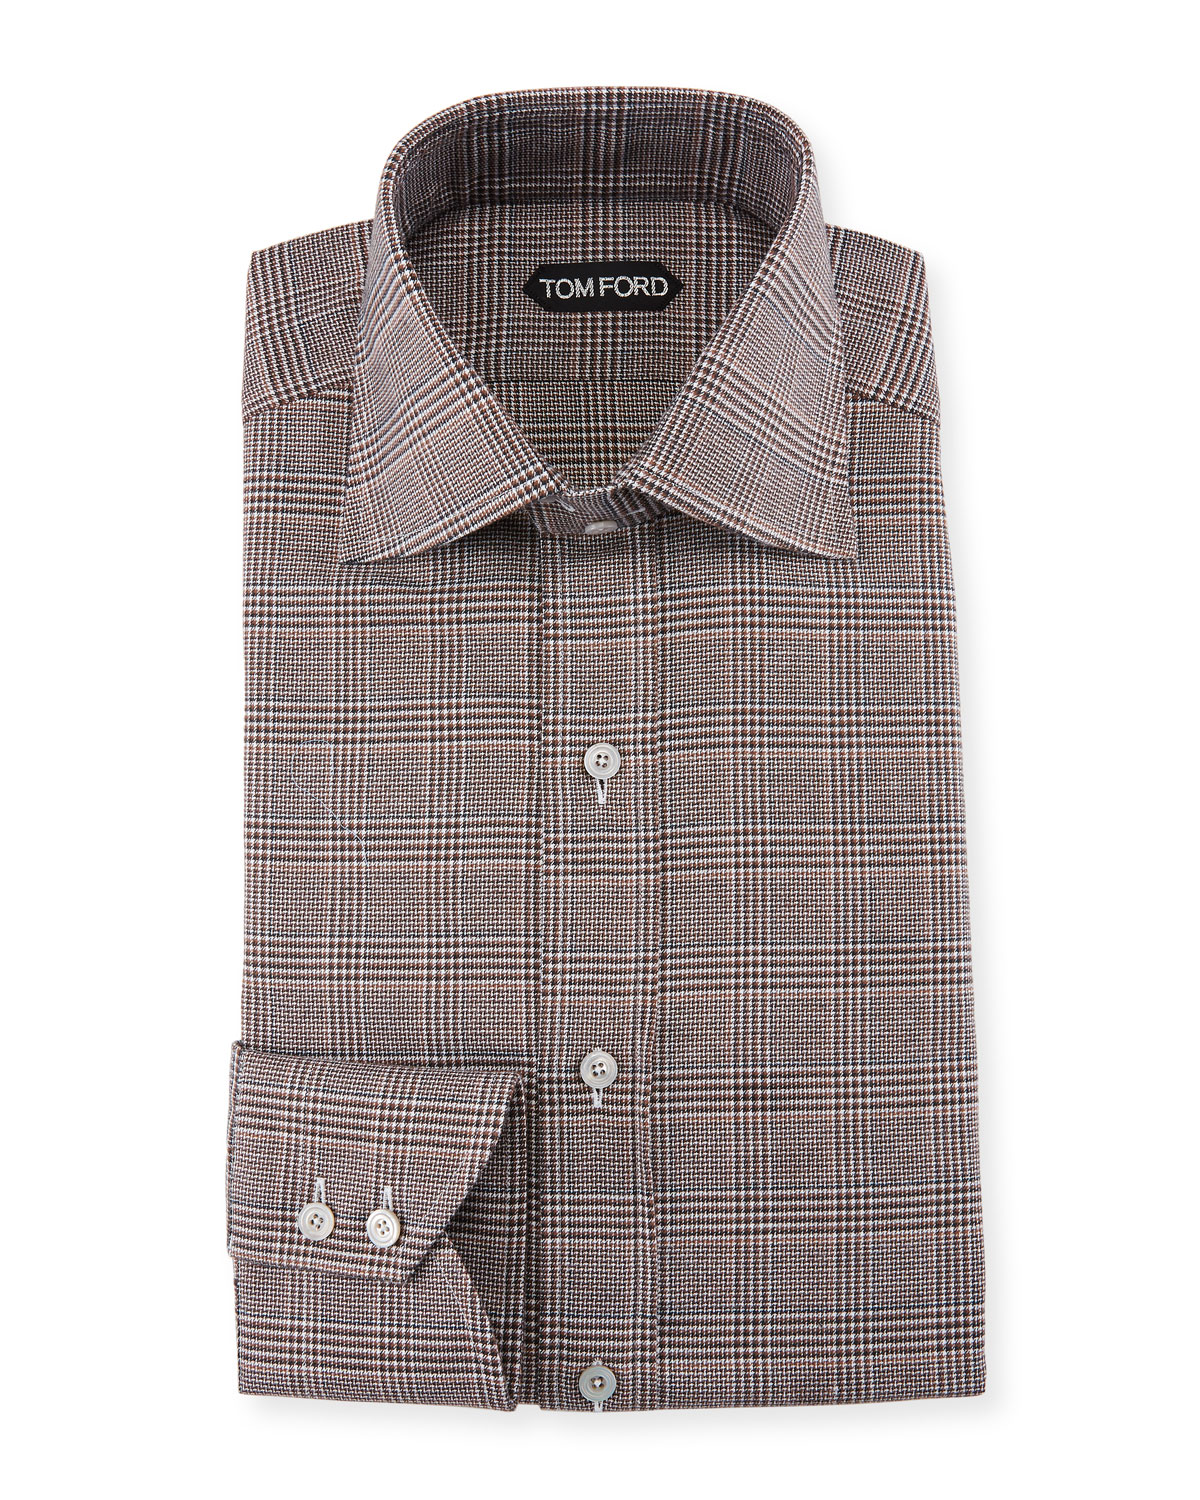 Tom Ford Mens Prince Of Wales Twill High Collar Dress Shirt